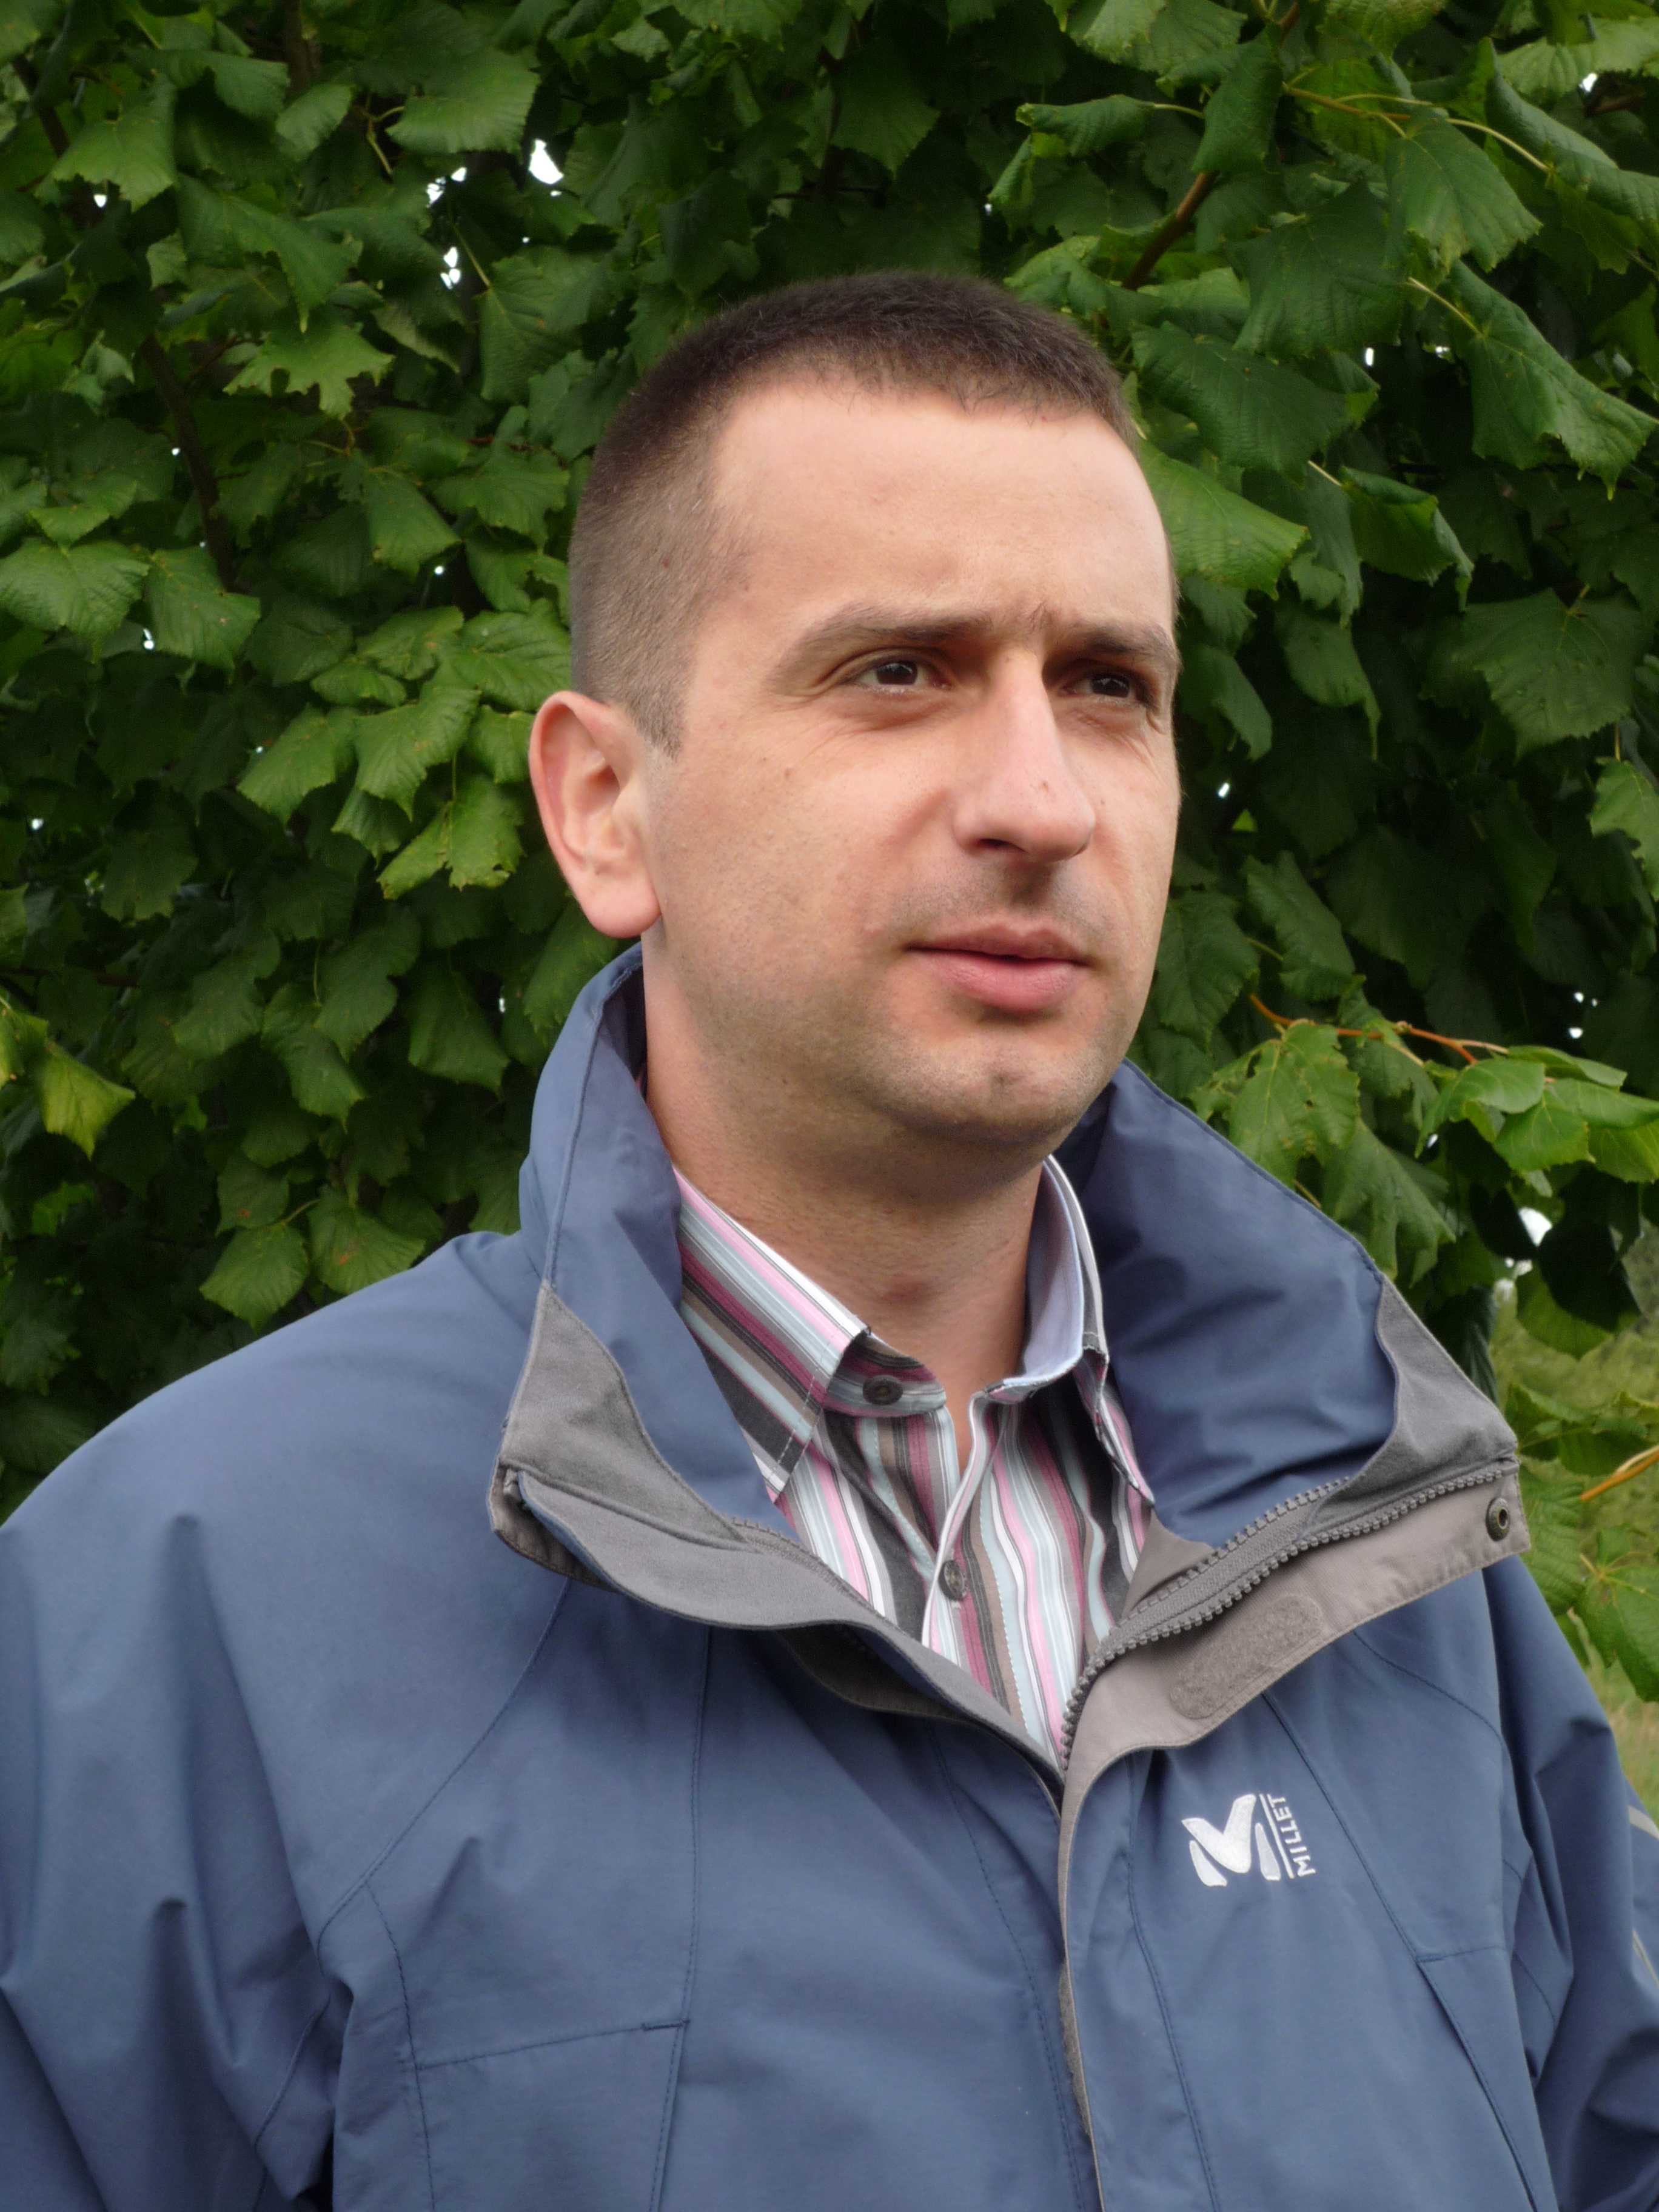 Costel Bucur, Head of Forestry and Protected Areas team at the WWF Danube-Carpathian Programme.